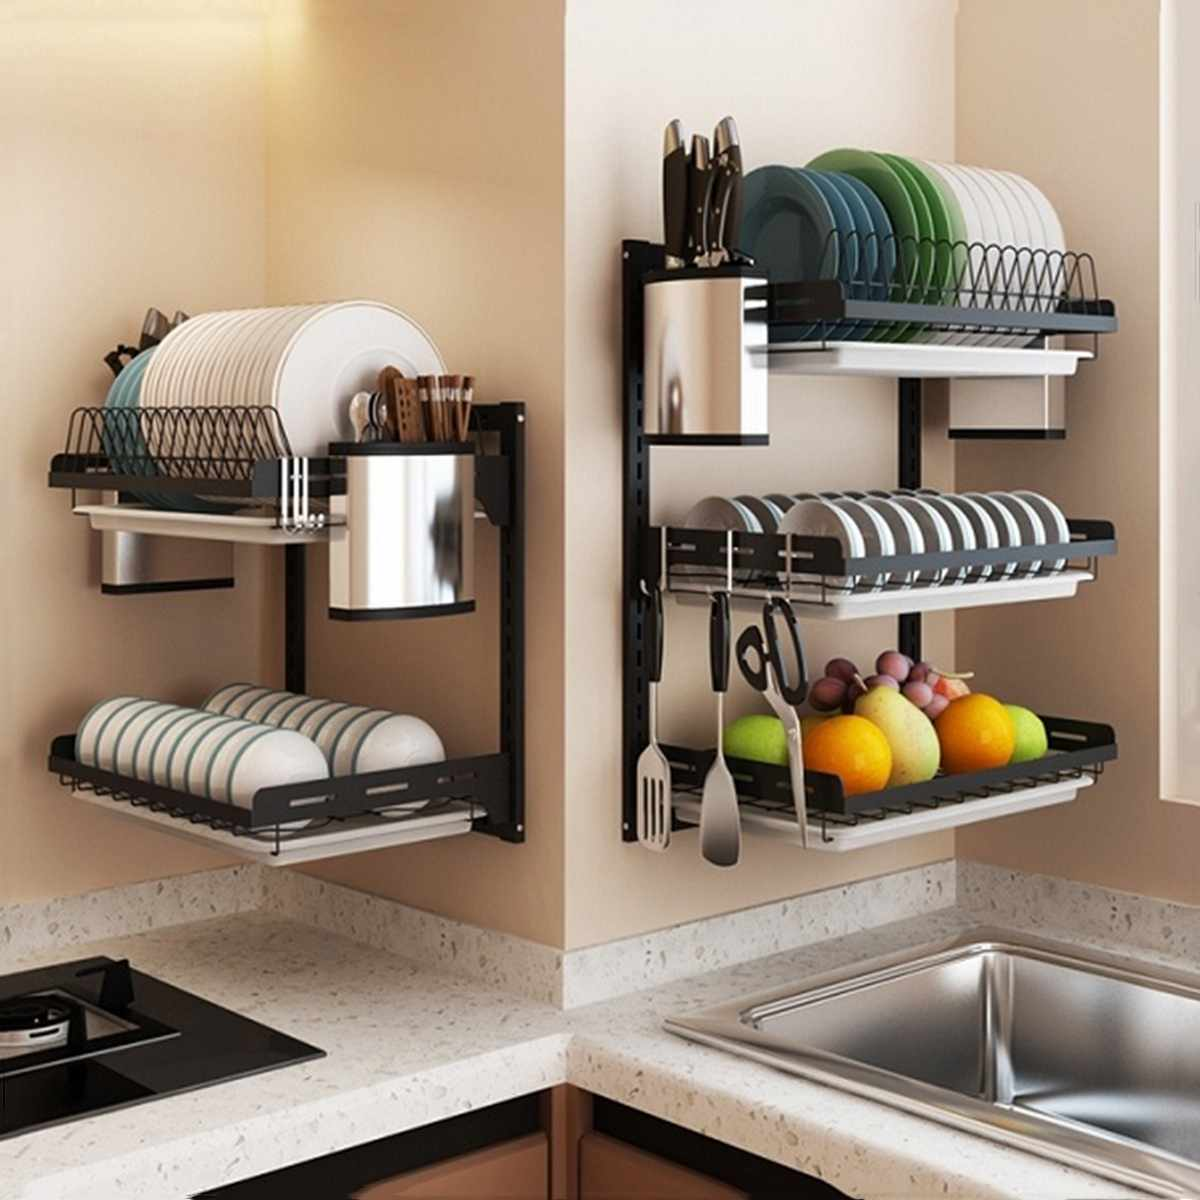 New 304 Stainless Steel Kitchen Dish Rack Plate Cutlery Cup Dish Drainer Drying Rack Wall Mount Kitchen Organizer Storage Holder Racks Holders Aliexpress